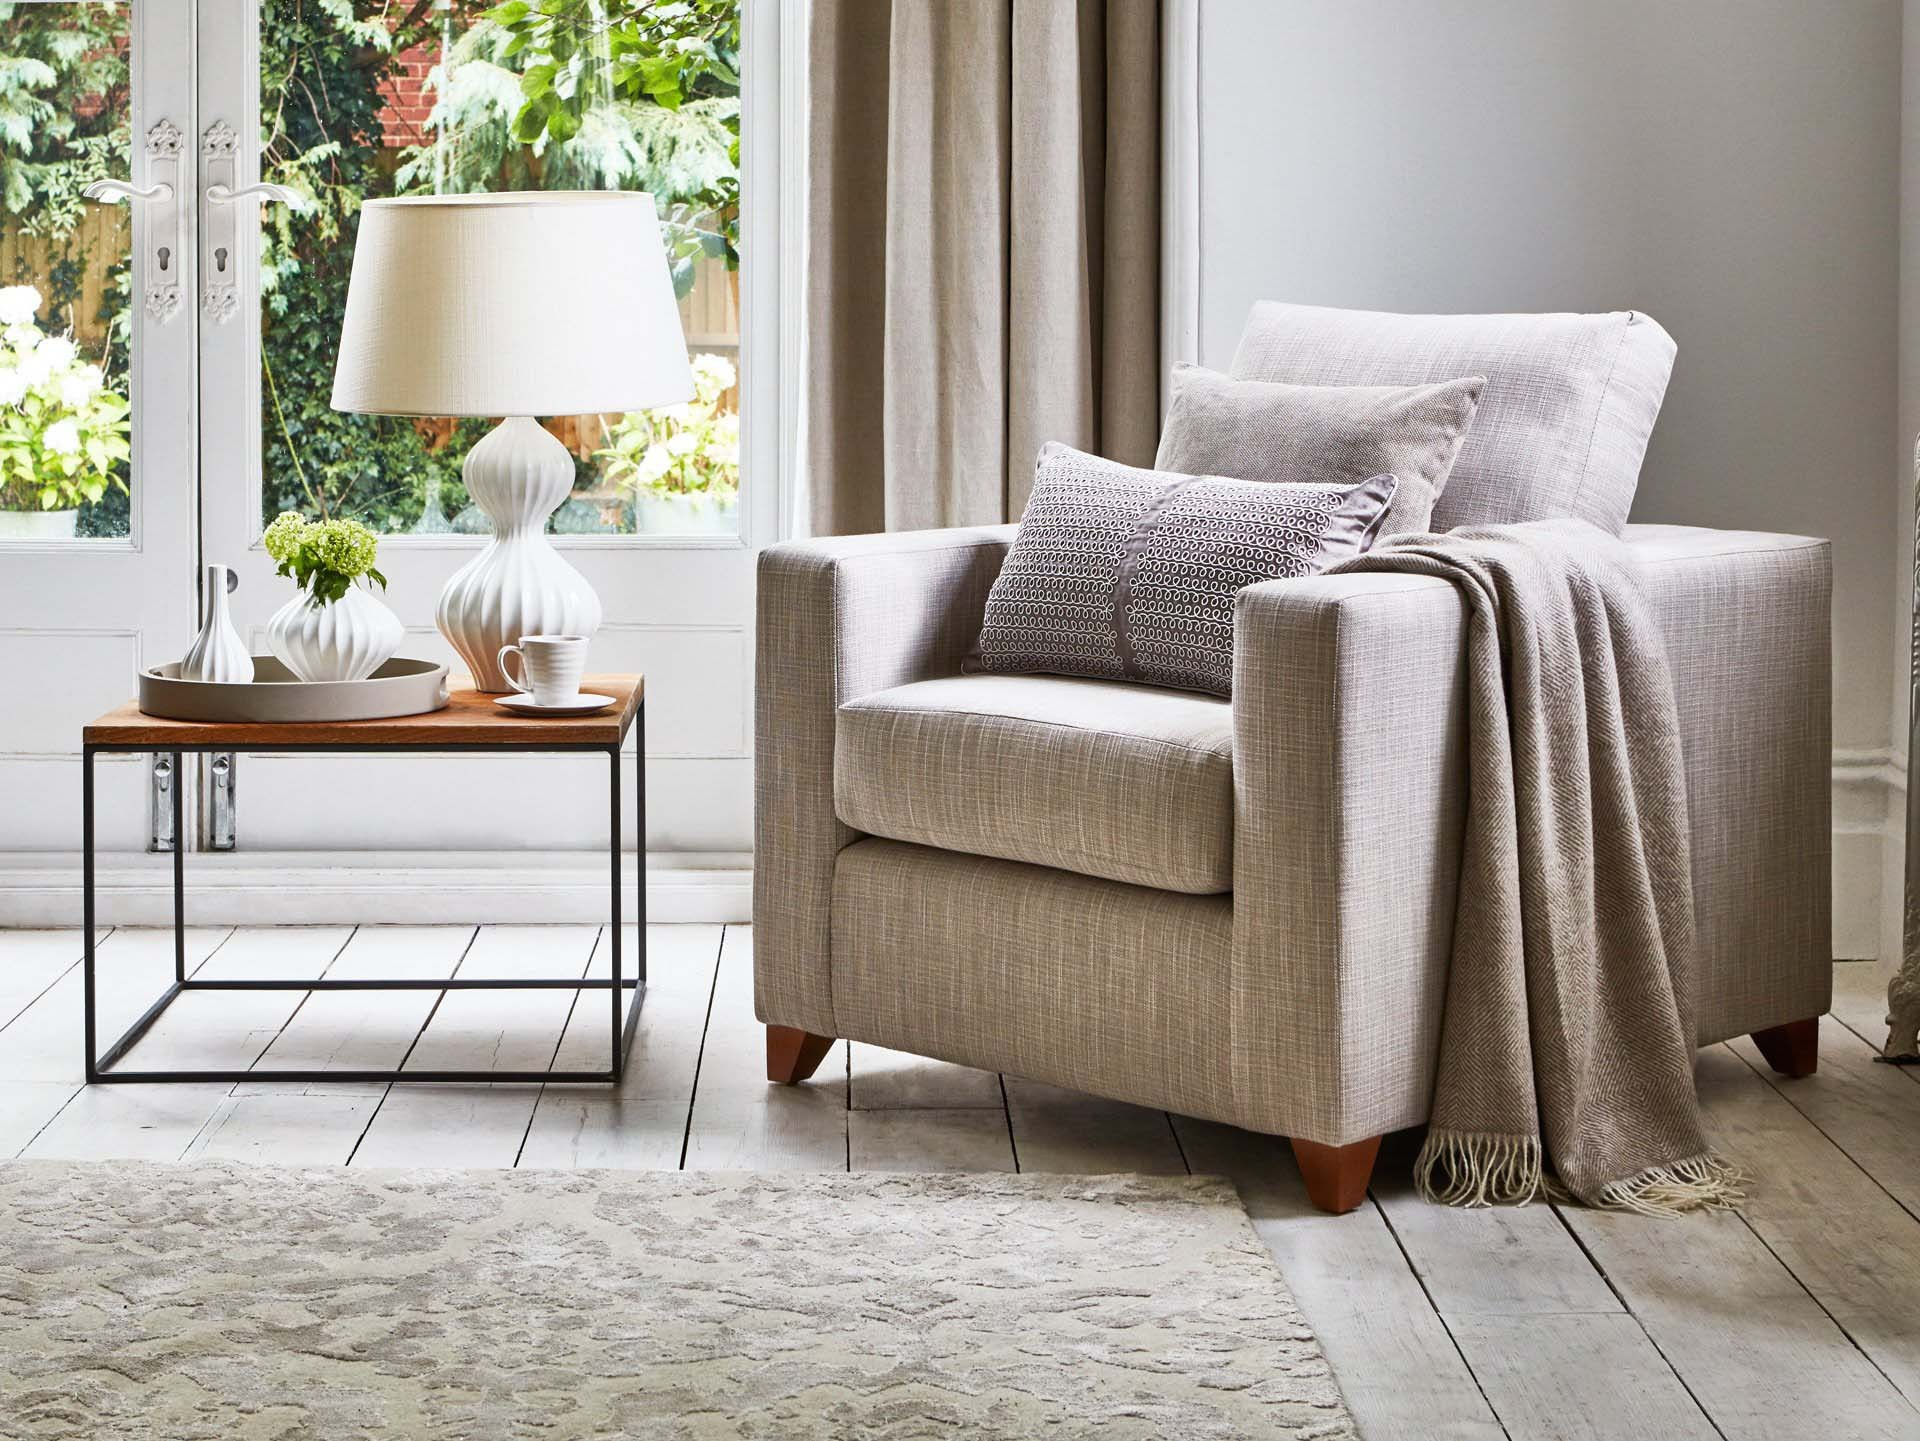 This is how I look in House Linen Vintage Grey with reflex foam seat cushions